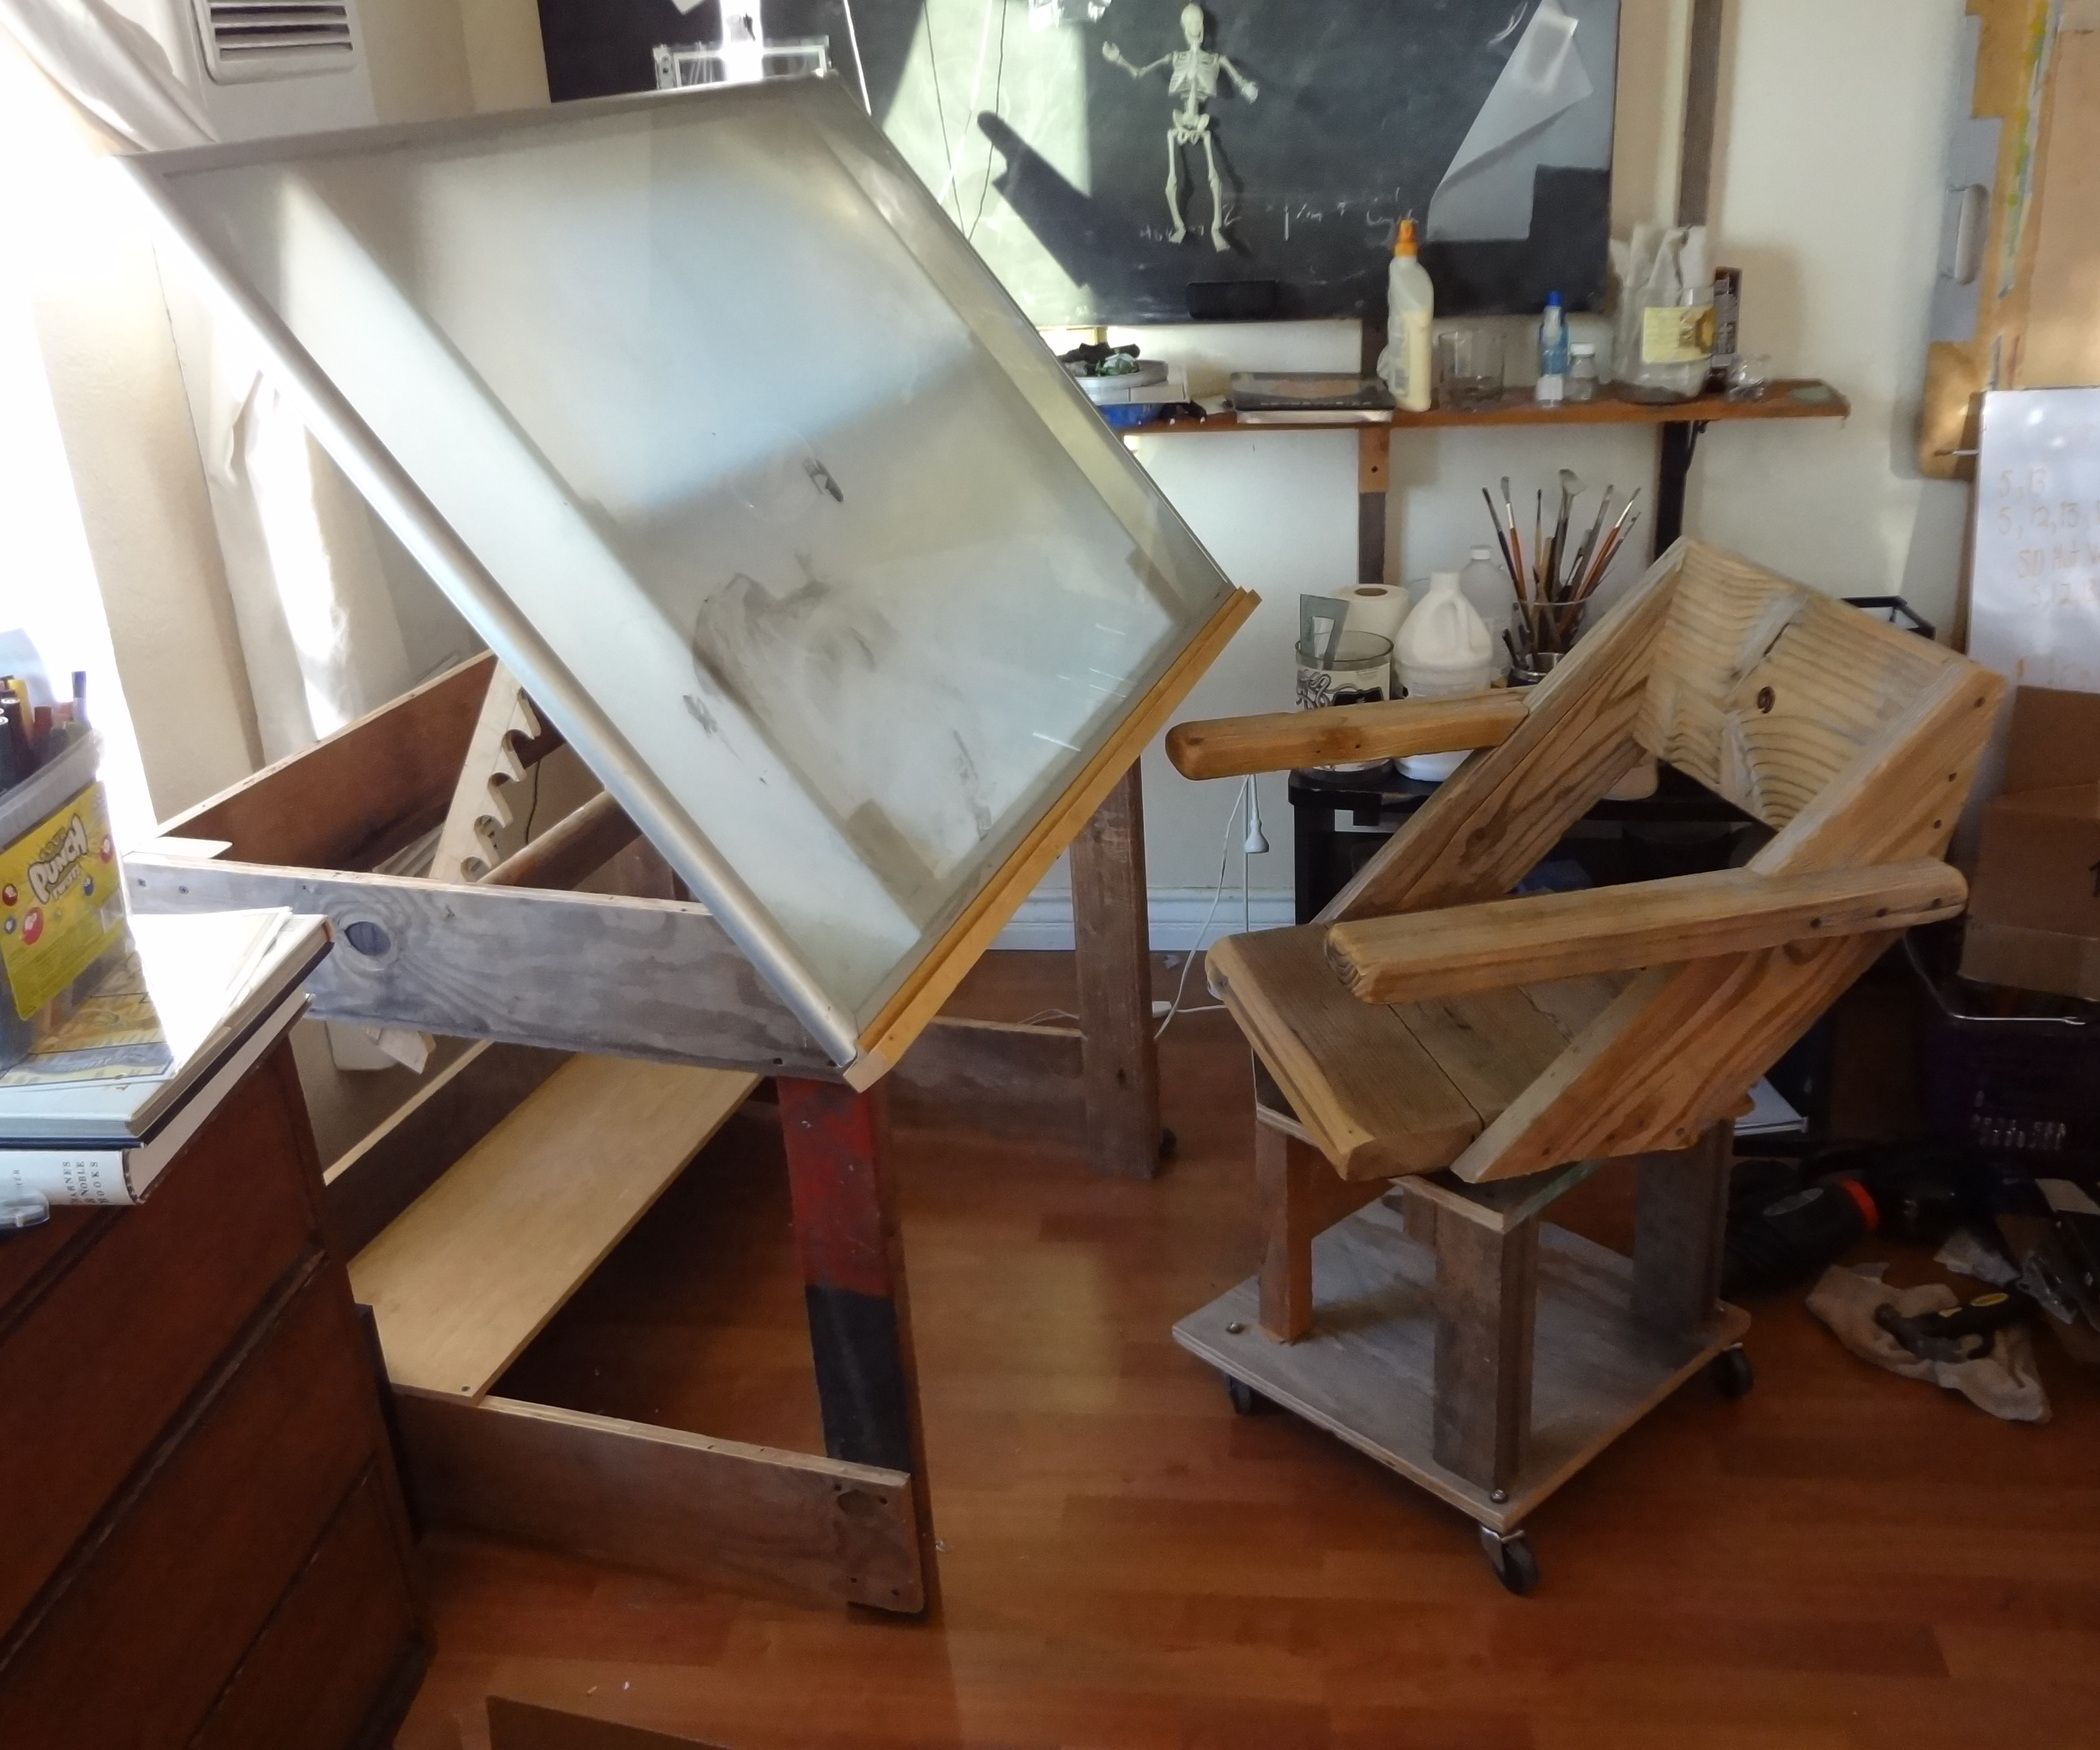 A Drafting Table Made From An Ikea Coffee Table Ikea Coffee Table Drafting Table Portable Drafting Table [ 1750 x 2100 Pixel ]